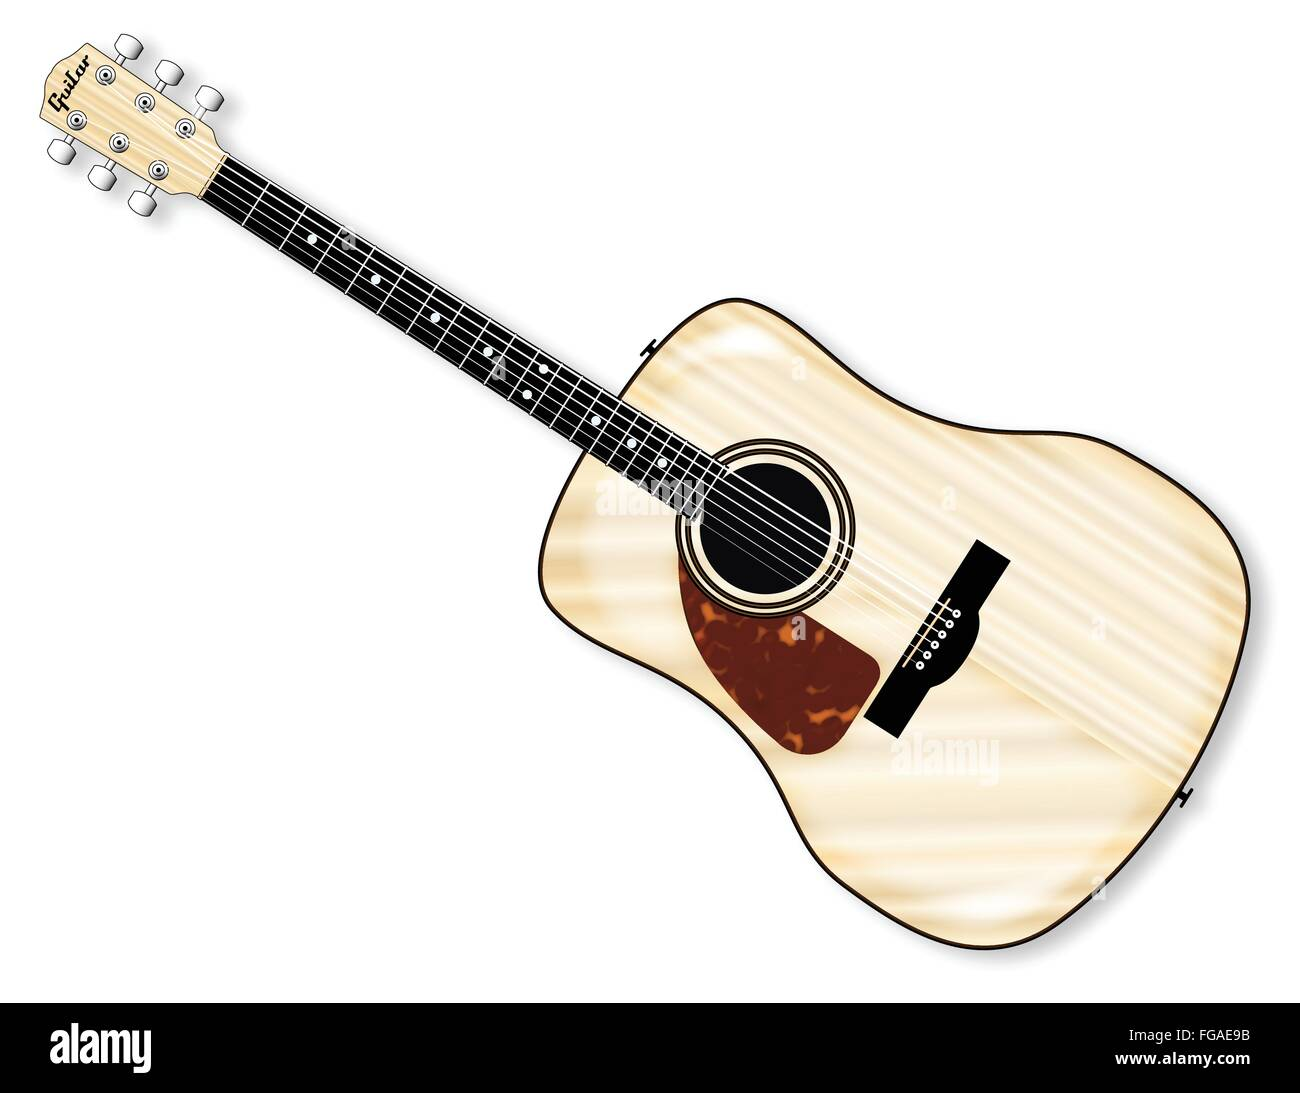 A typical left handed acoustic guitar isolated over a white background. - Stock Image